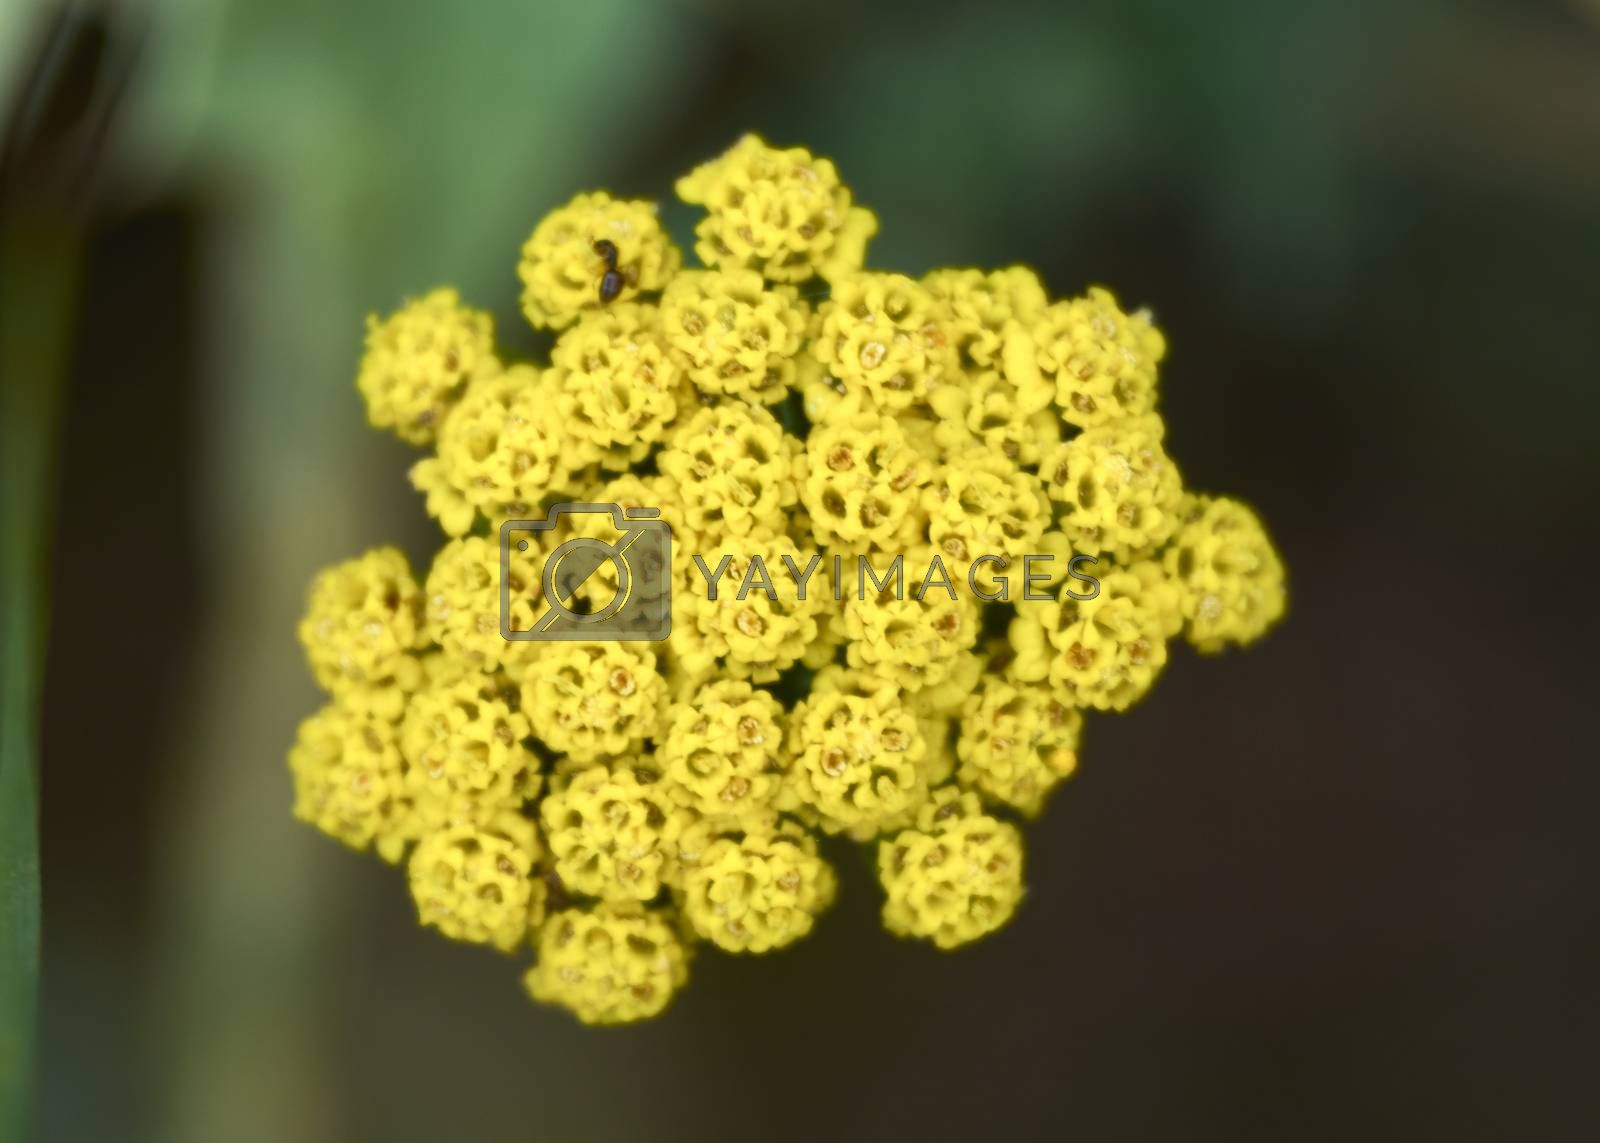 Set of small yellow flowers, macro photography, details, light, insect